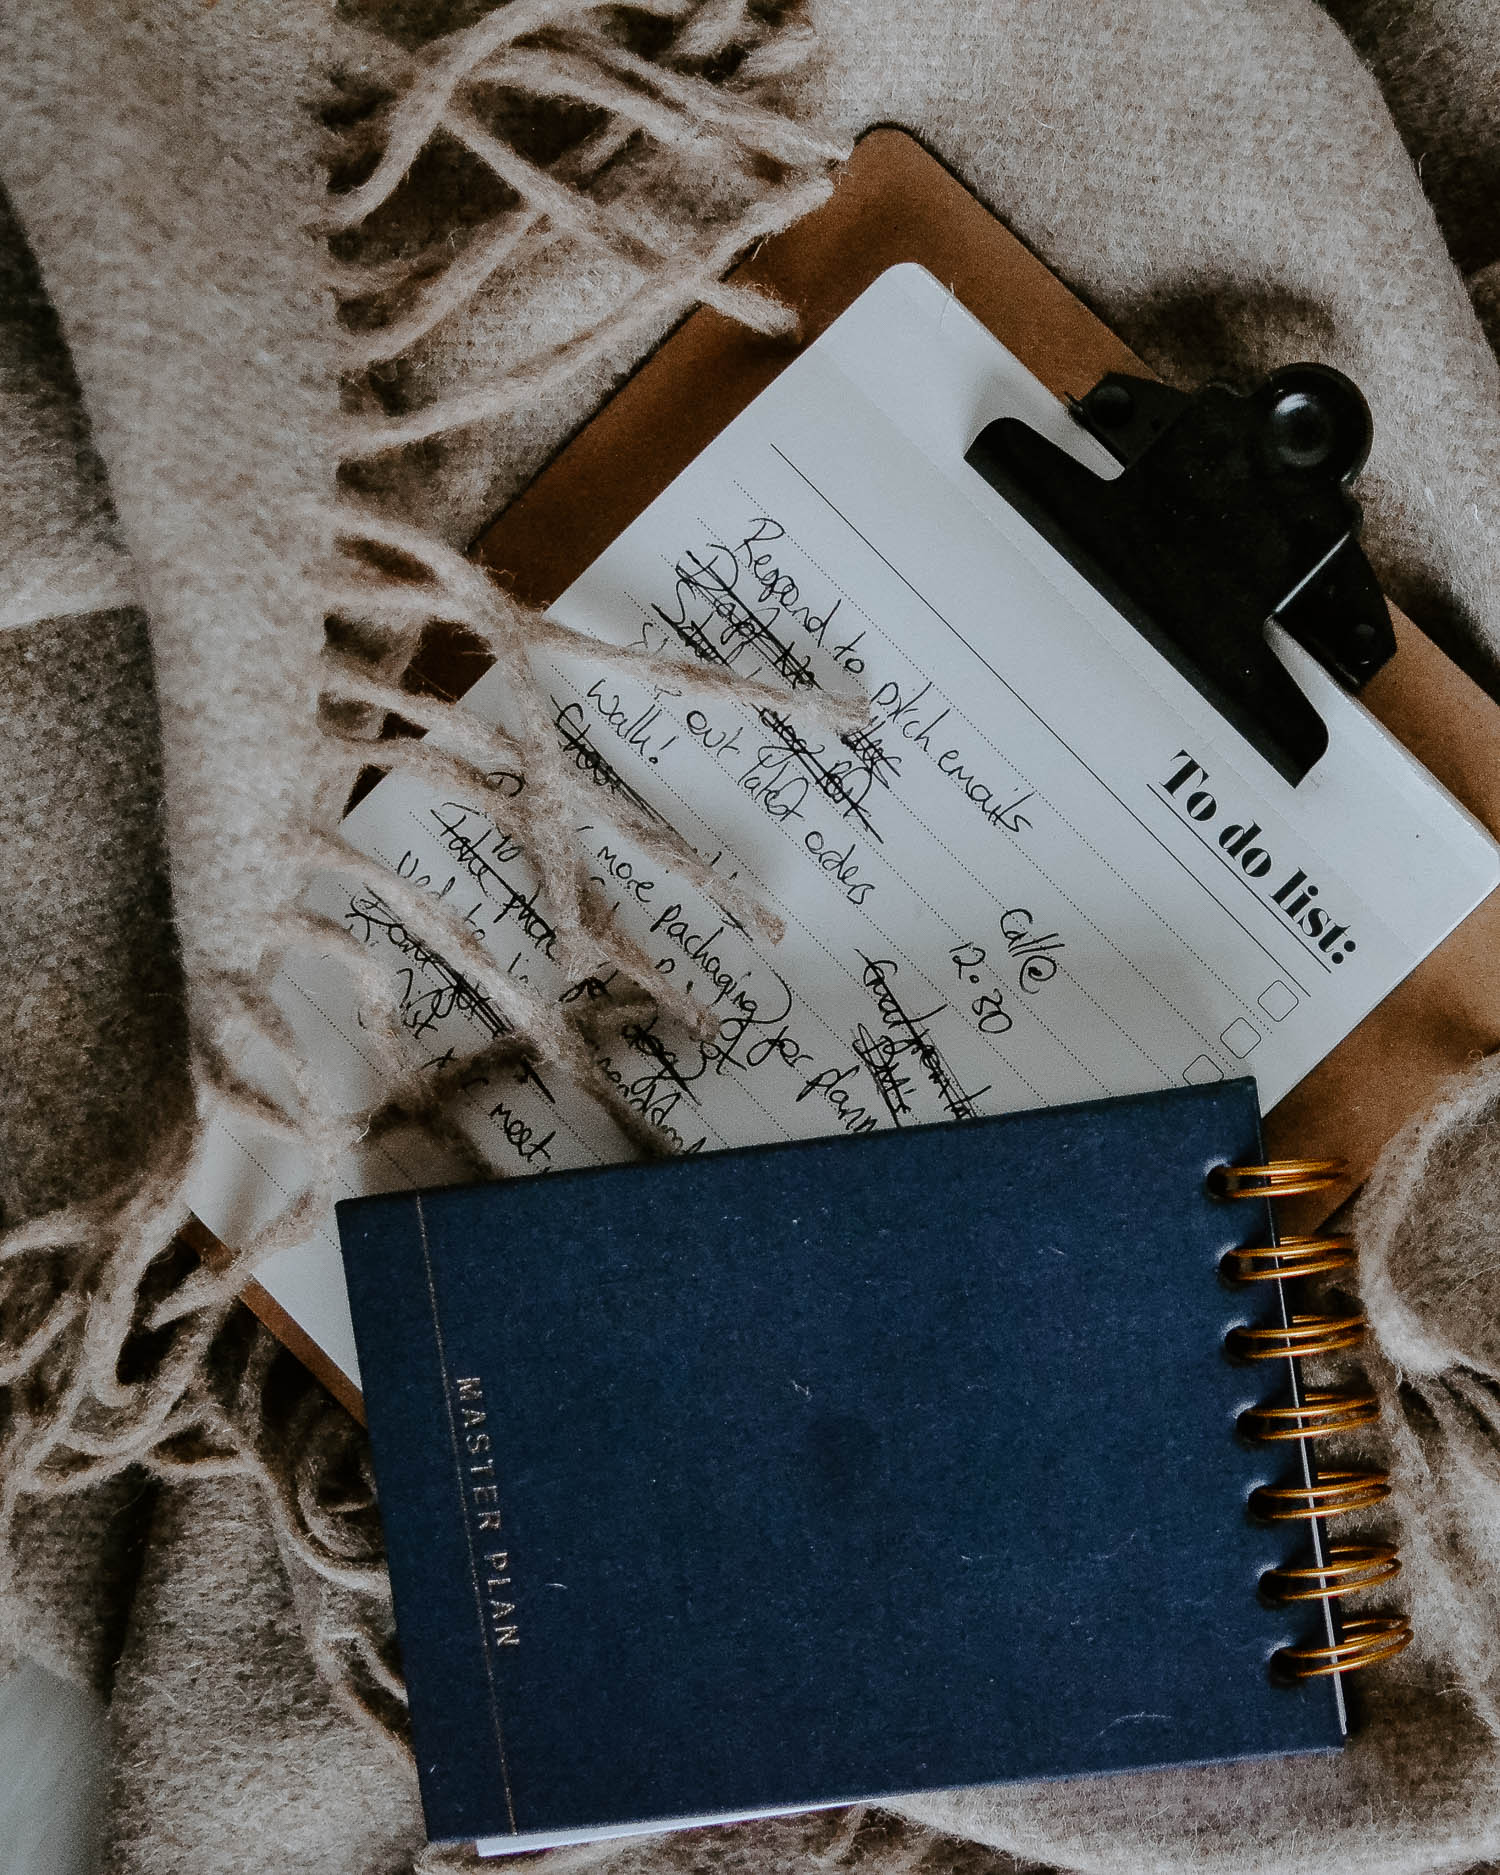 Notebooks piled up on cosy blanket